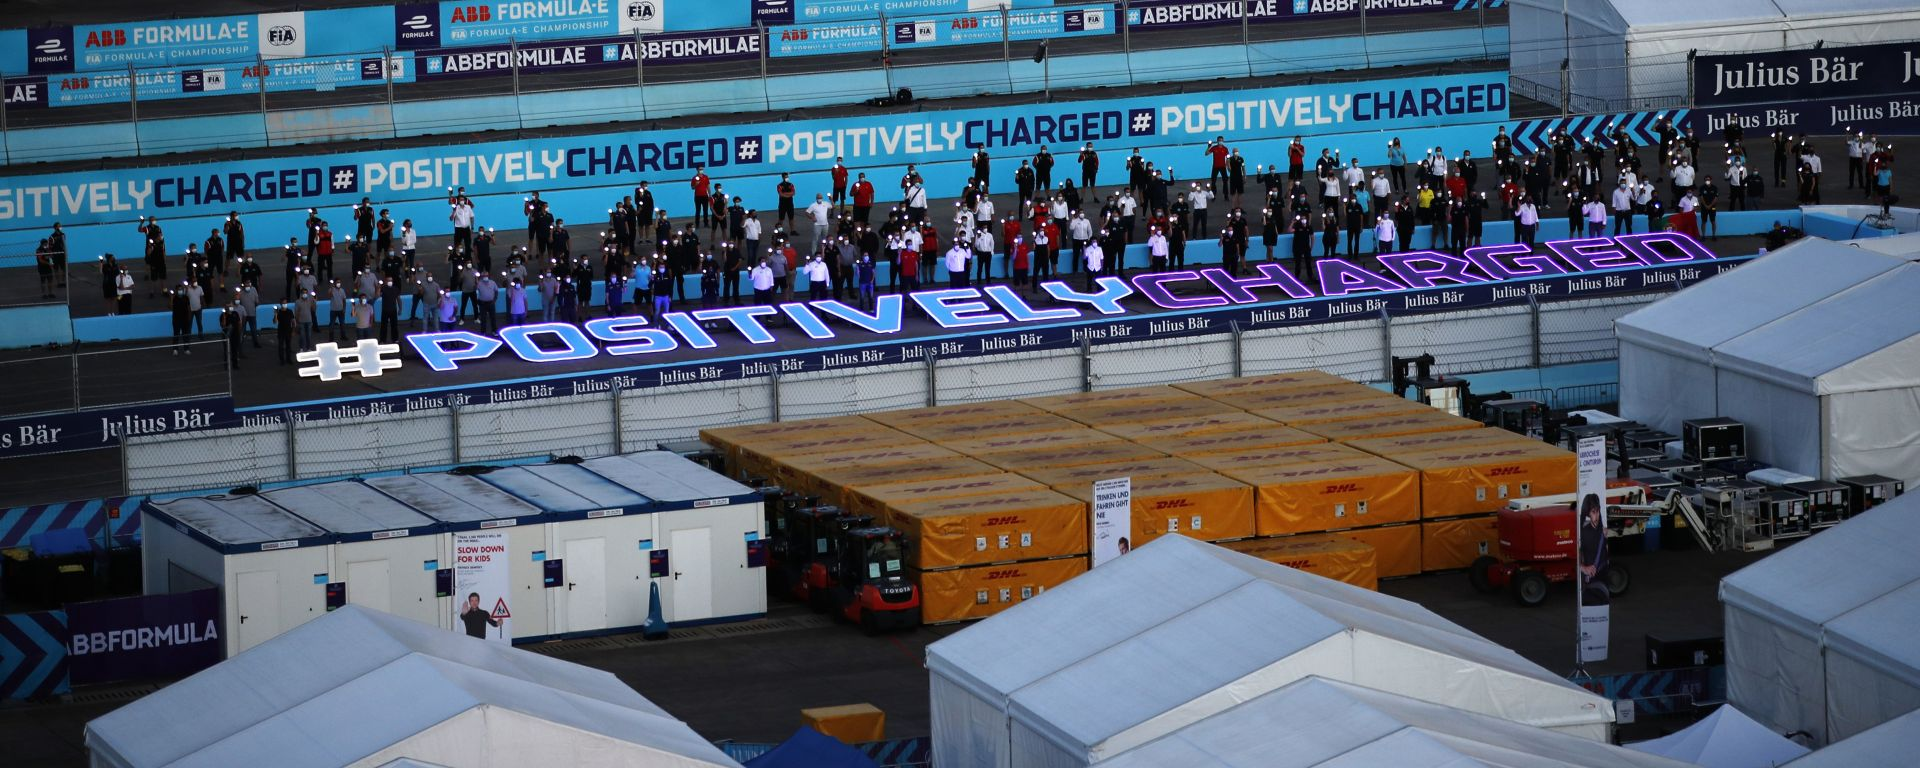 Formula E ePrix Berlino 2020: i piloti attorno all'hashtag #PositivelyCharged